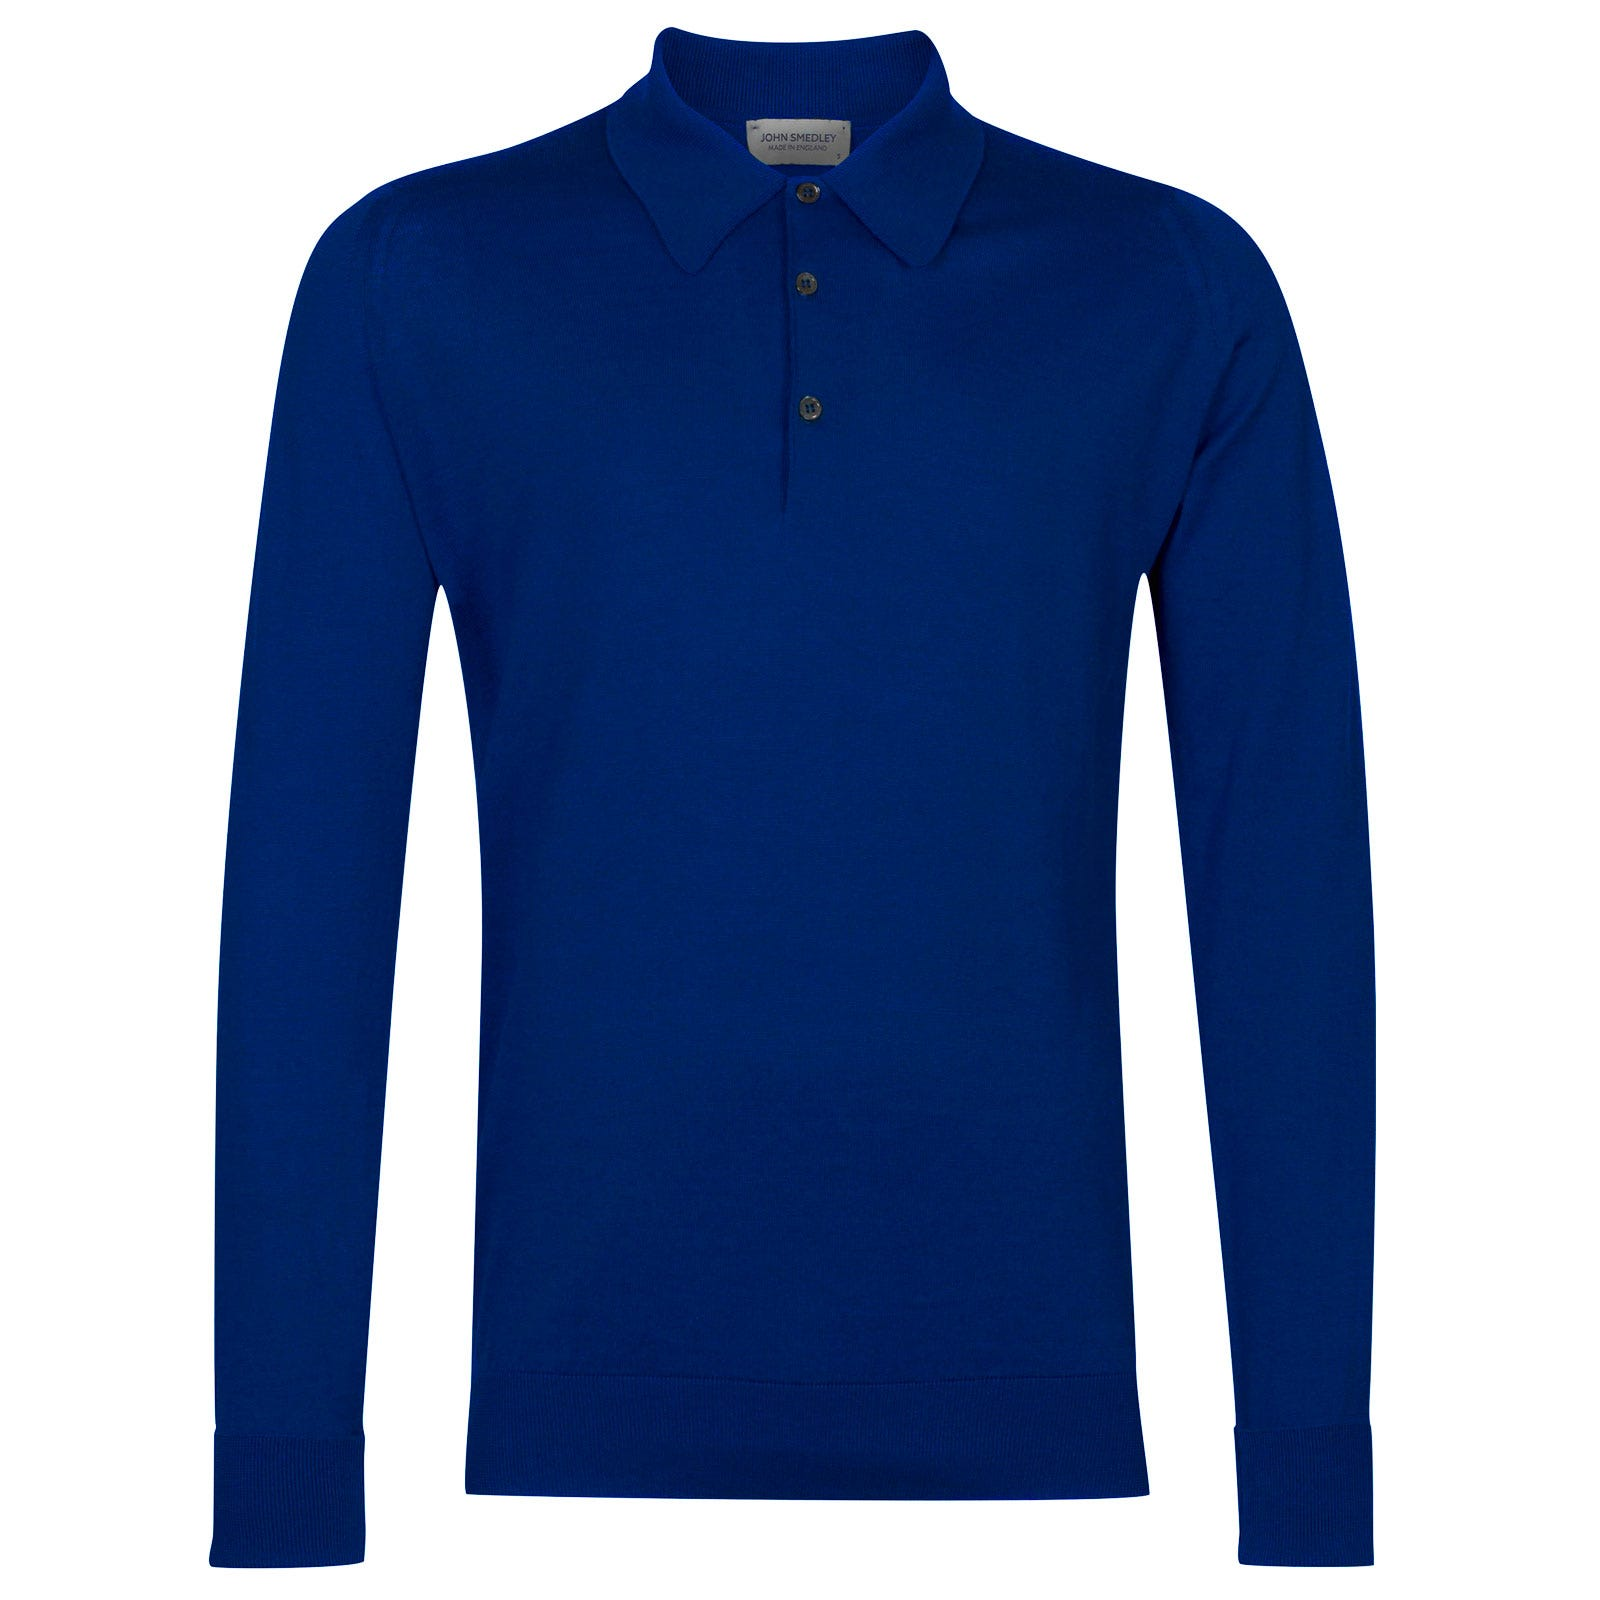 John Smedley finchley Sea Island Cotton Shirt in Coniston Blue-XXL